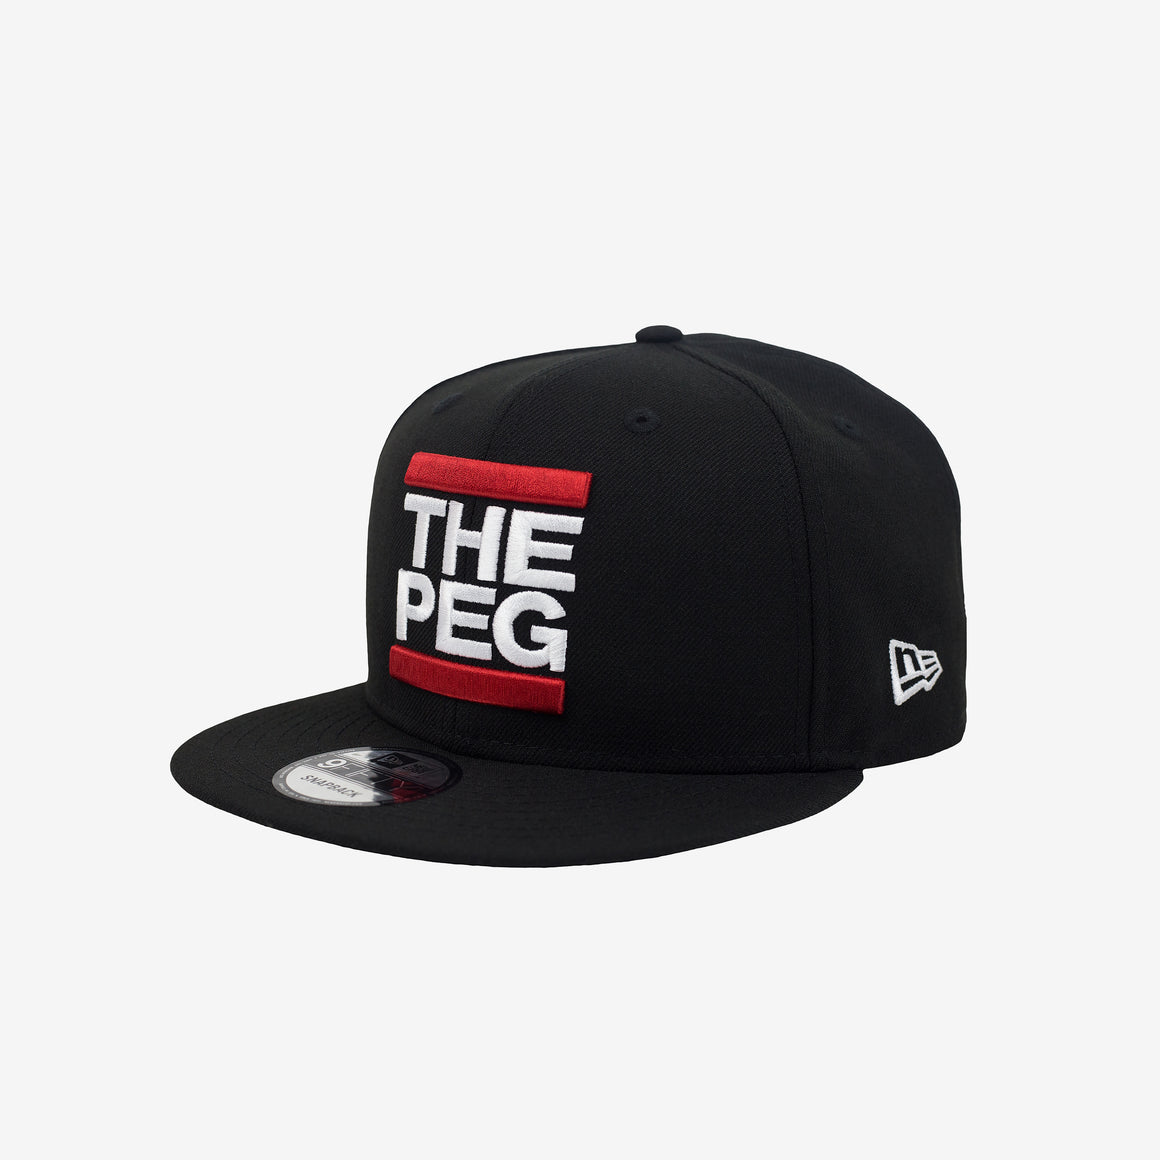 New Era 9FIFTY Classic Snapback (Original Black)